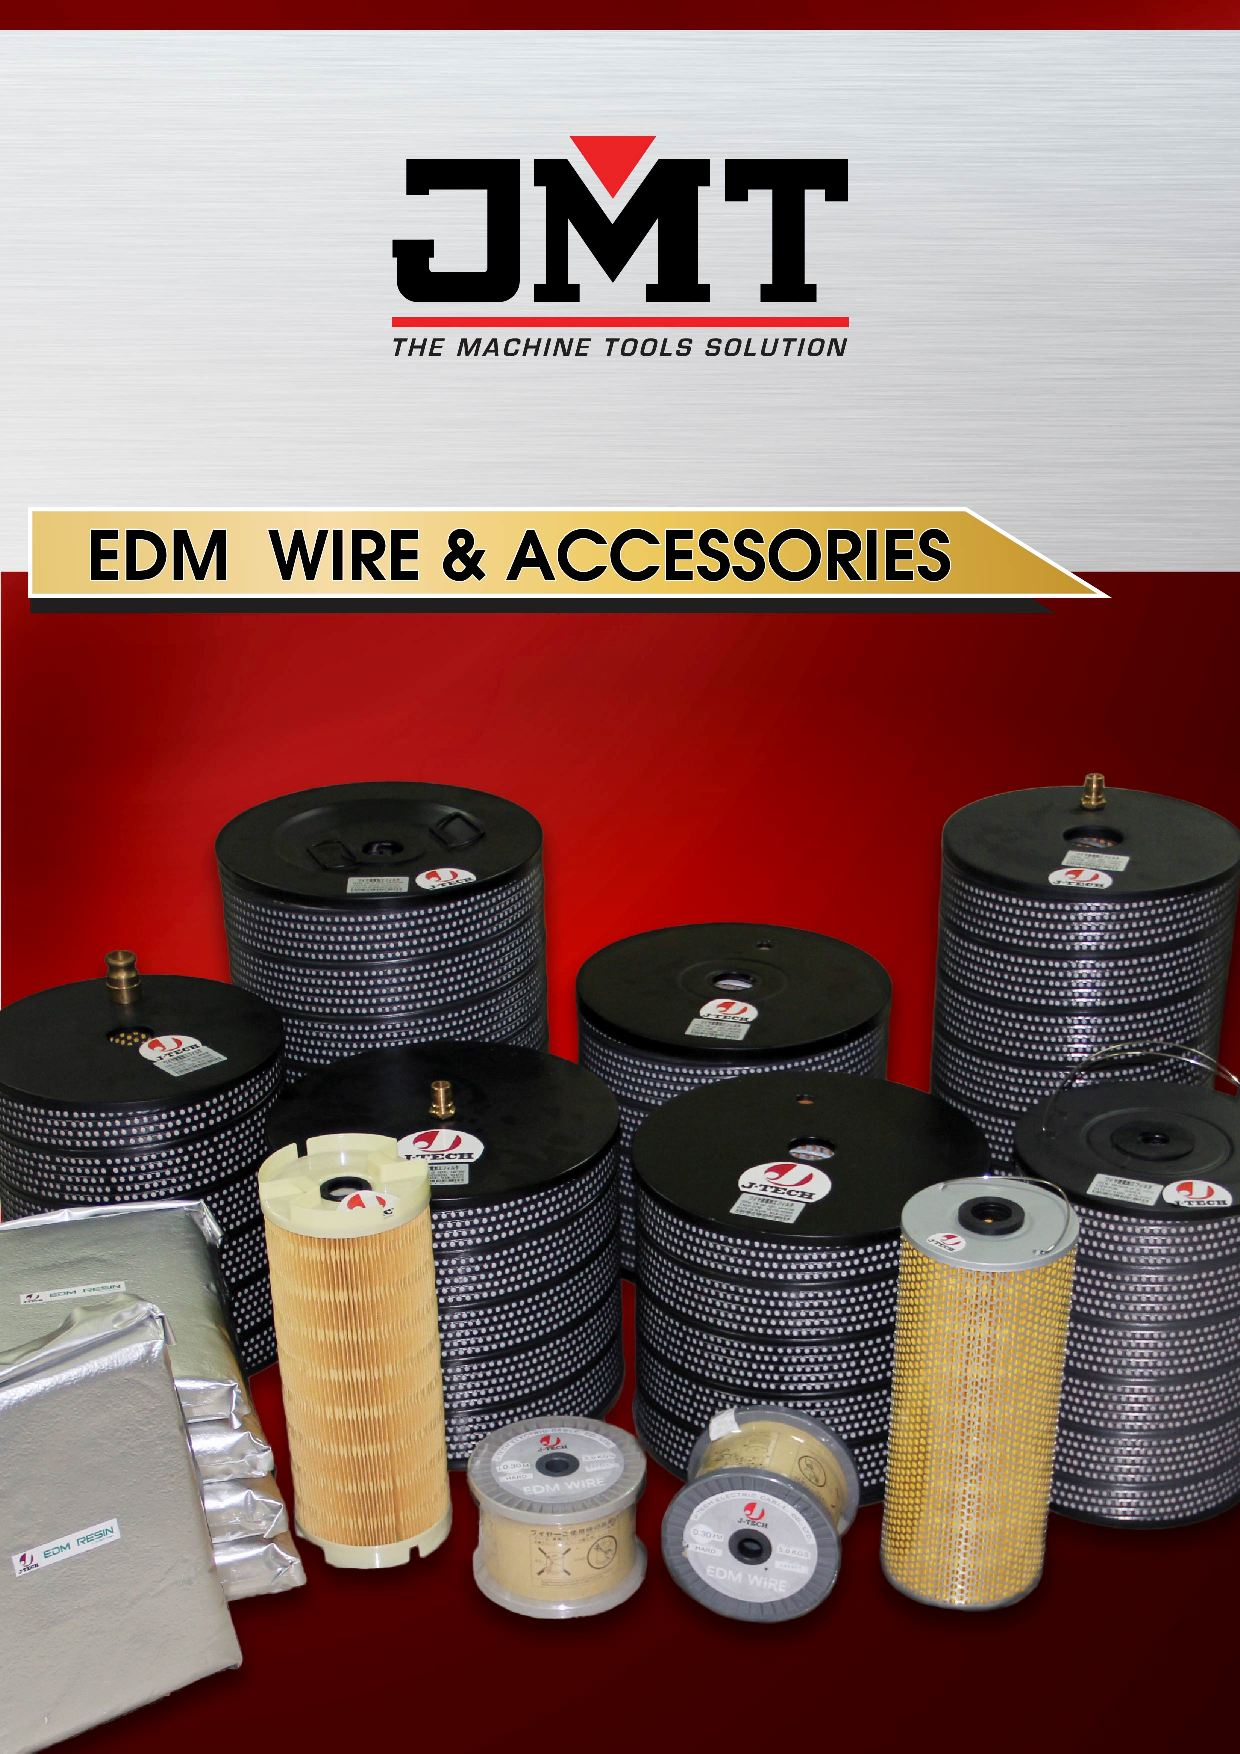 EDM WIRE & ACCESSORIES